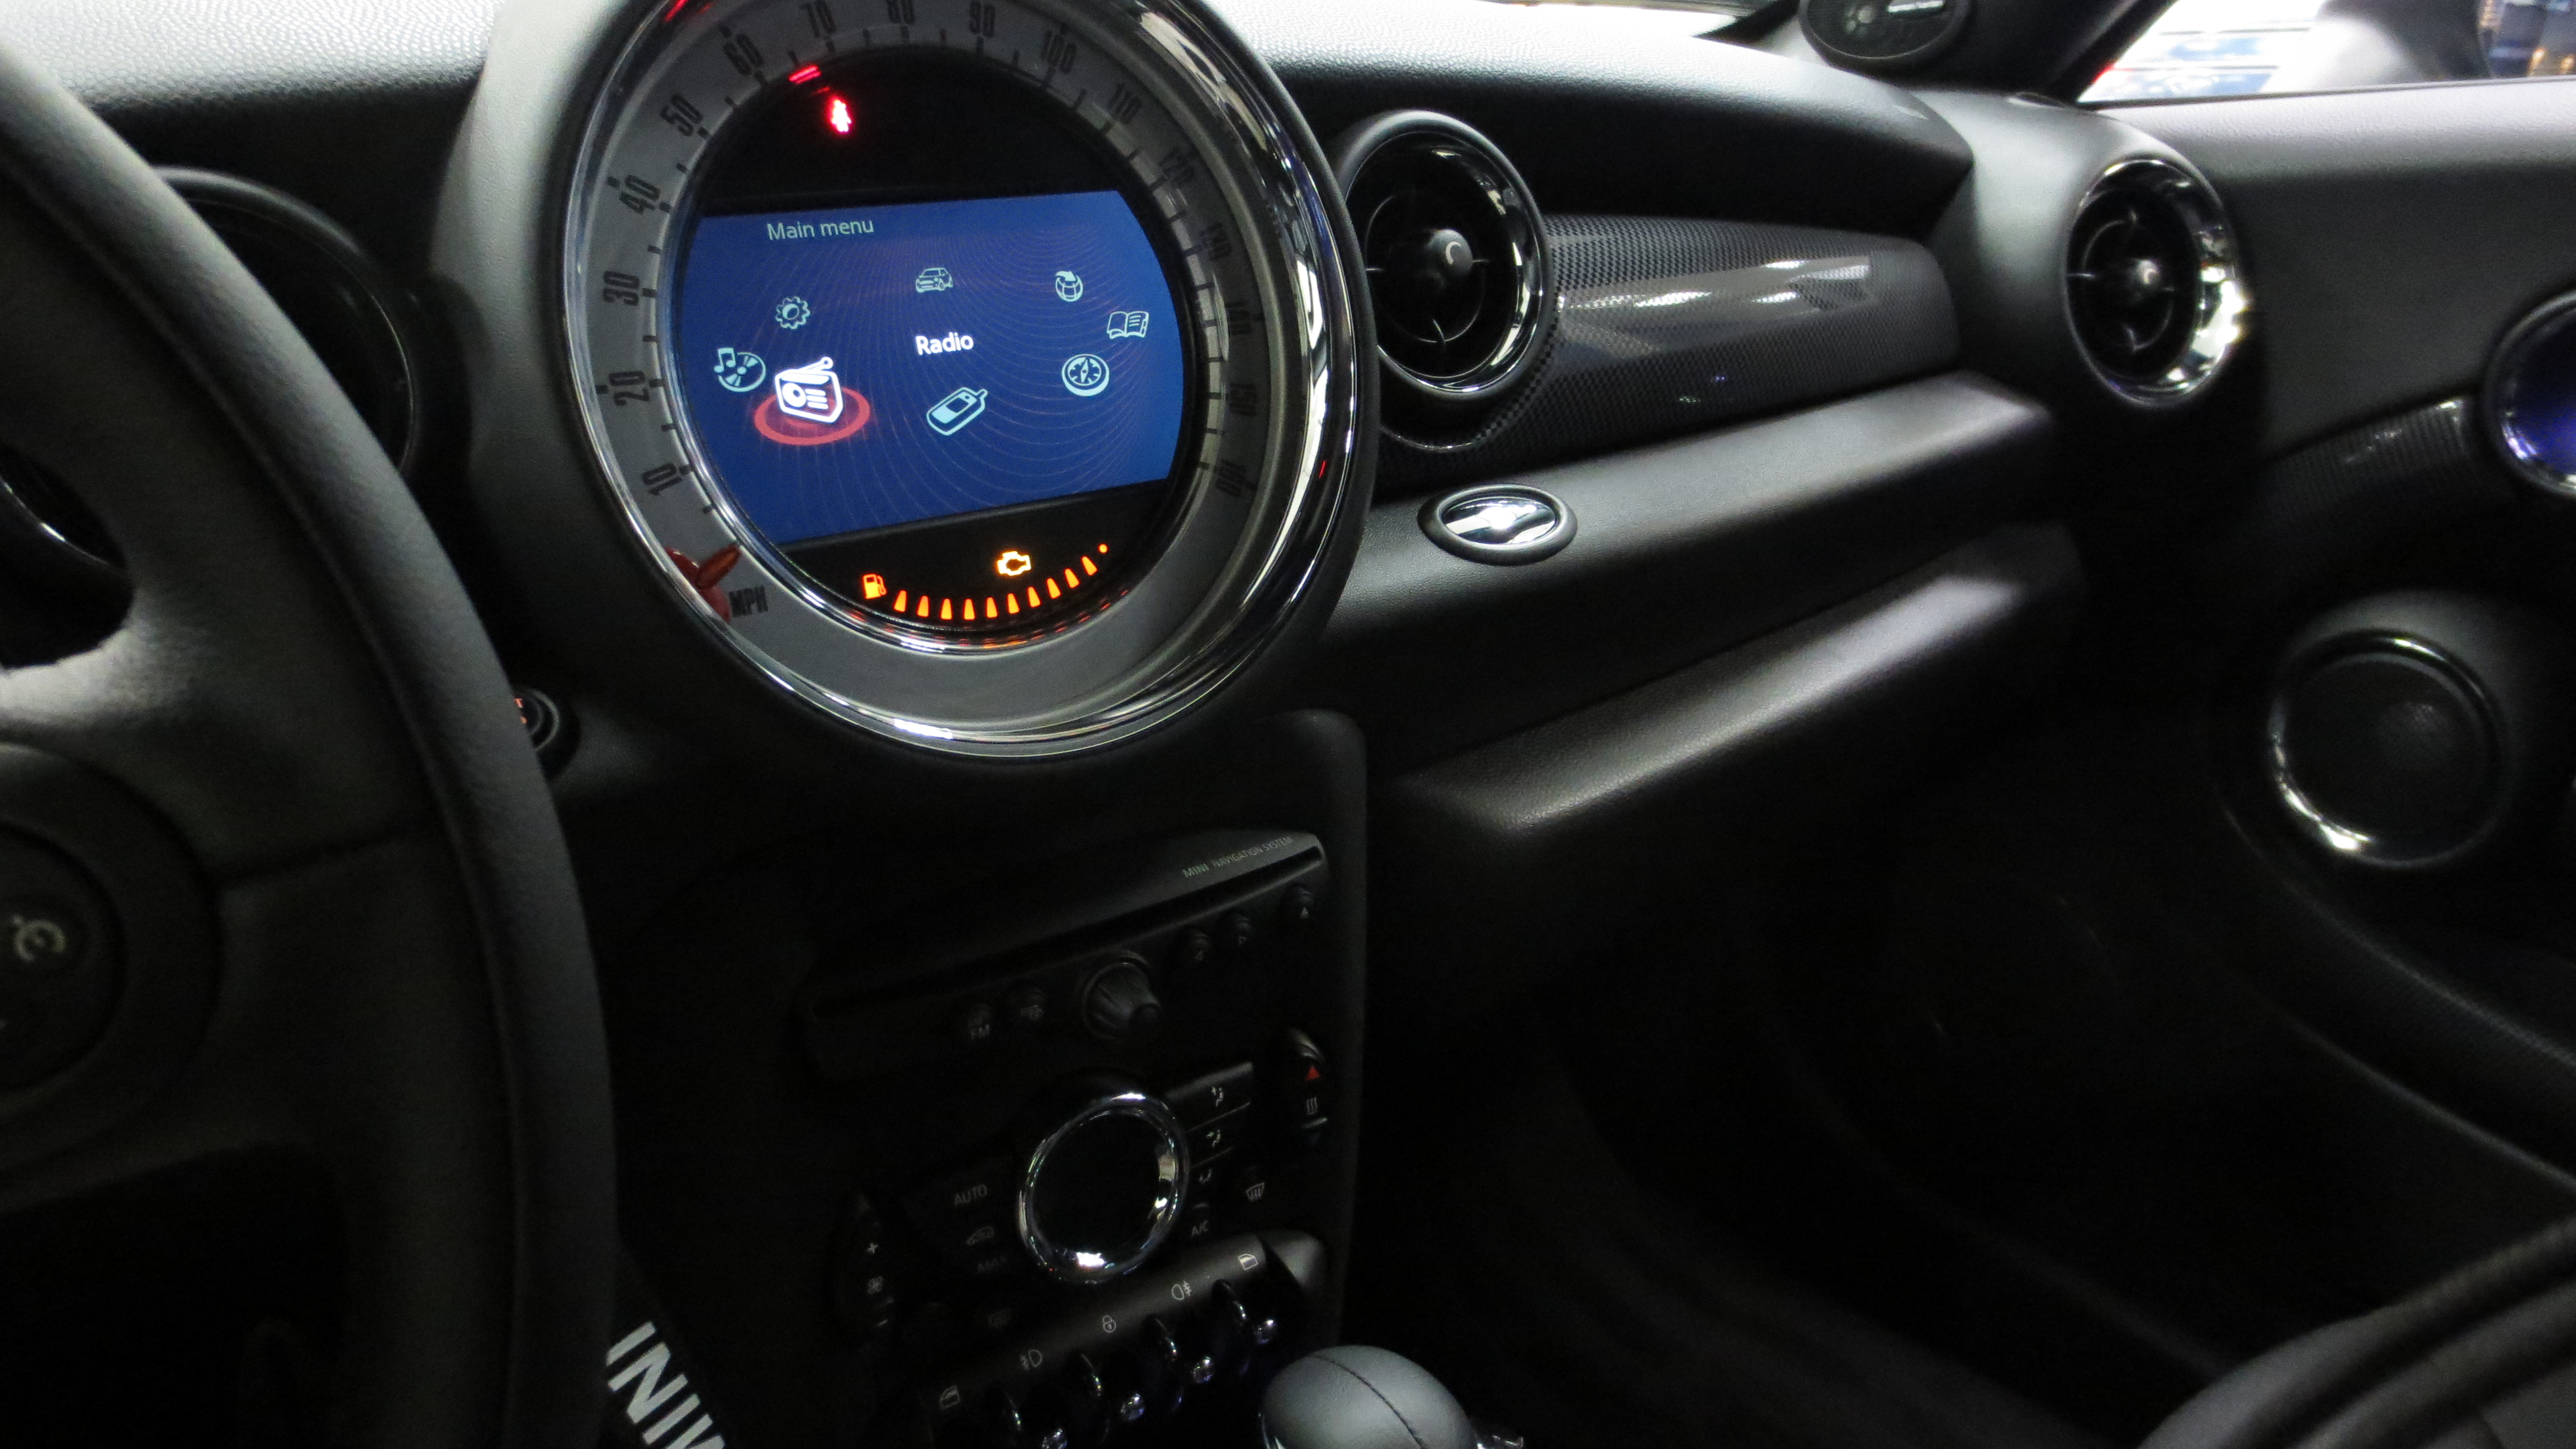 Mini Cooper: Pairing a Bluetooth Phone to Mini Connected